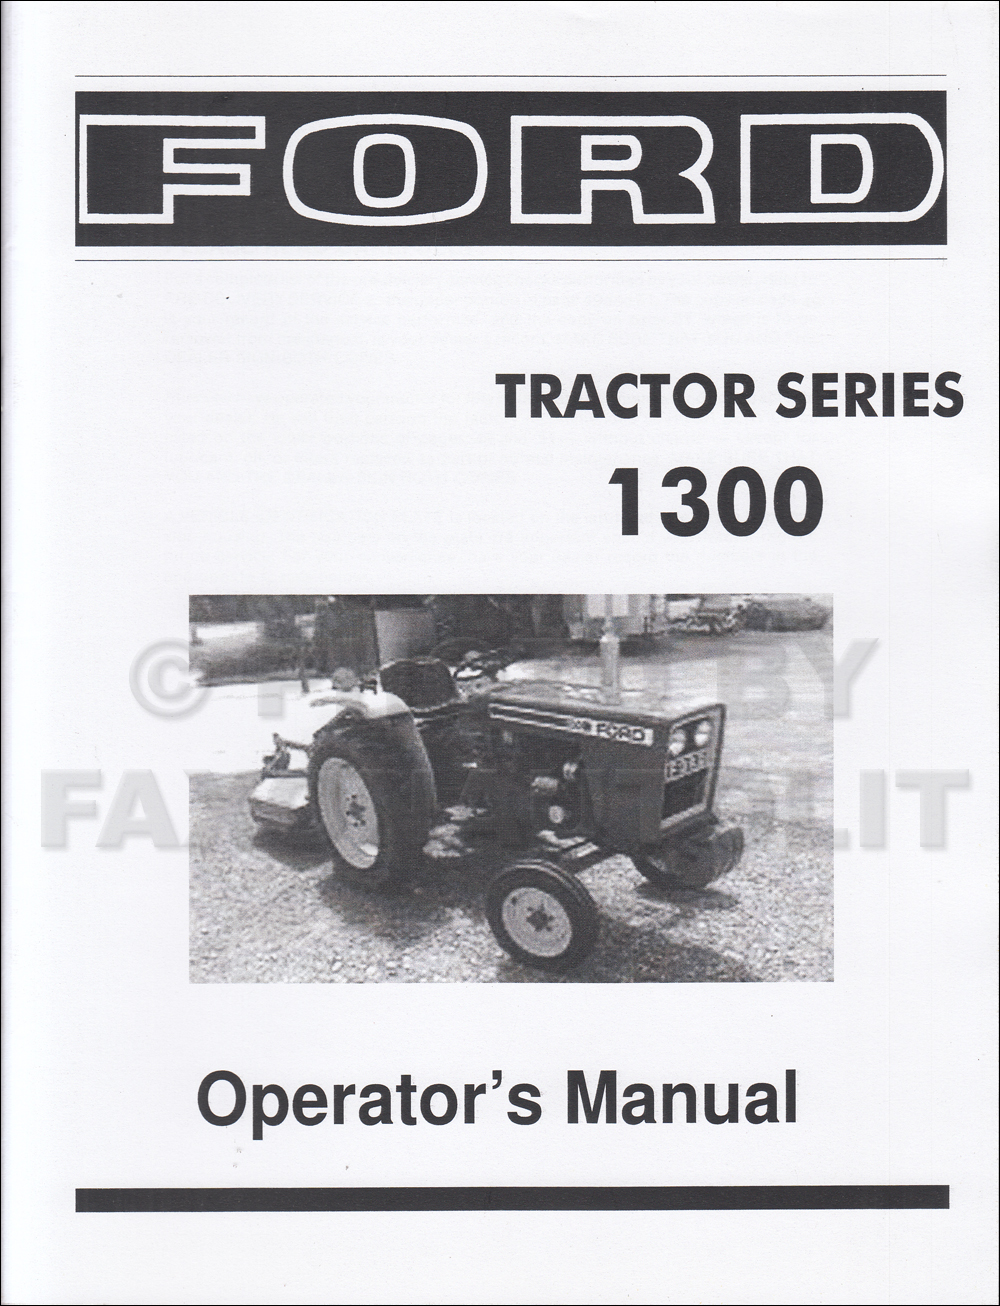 1979-1982 Ford 1300 Series Tractor Owner's Manual Reprint Diesel